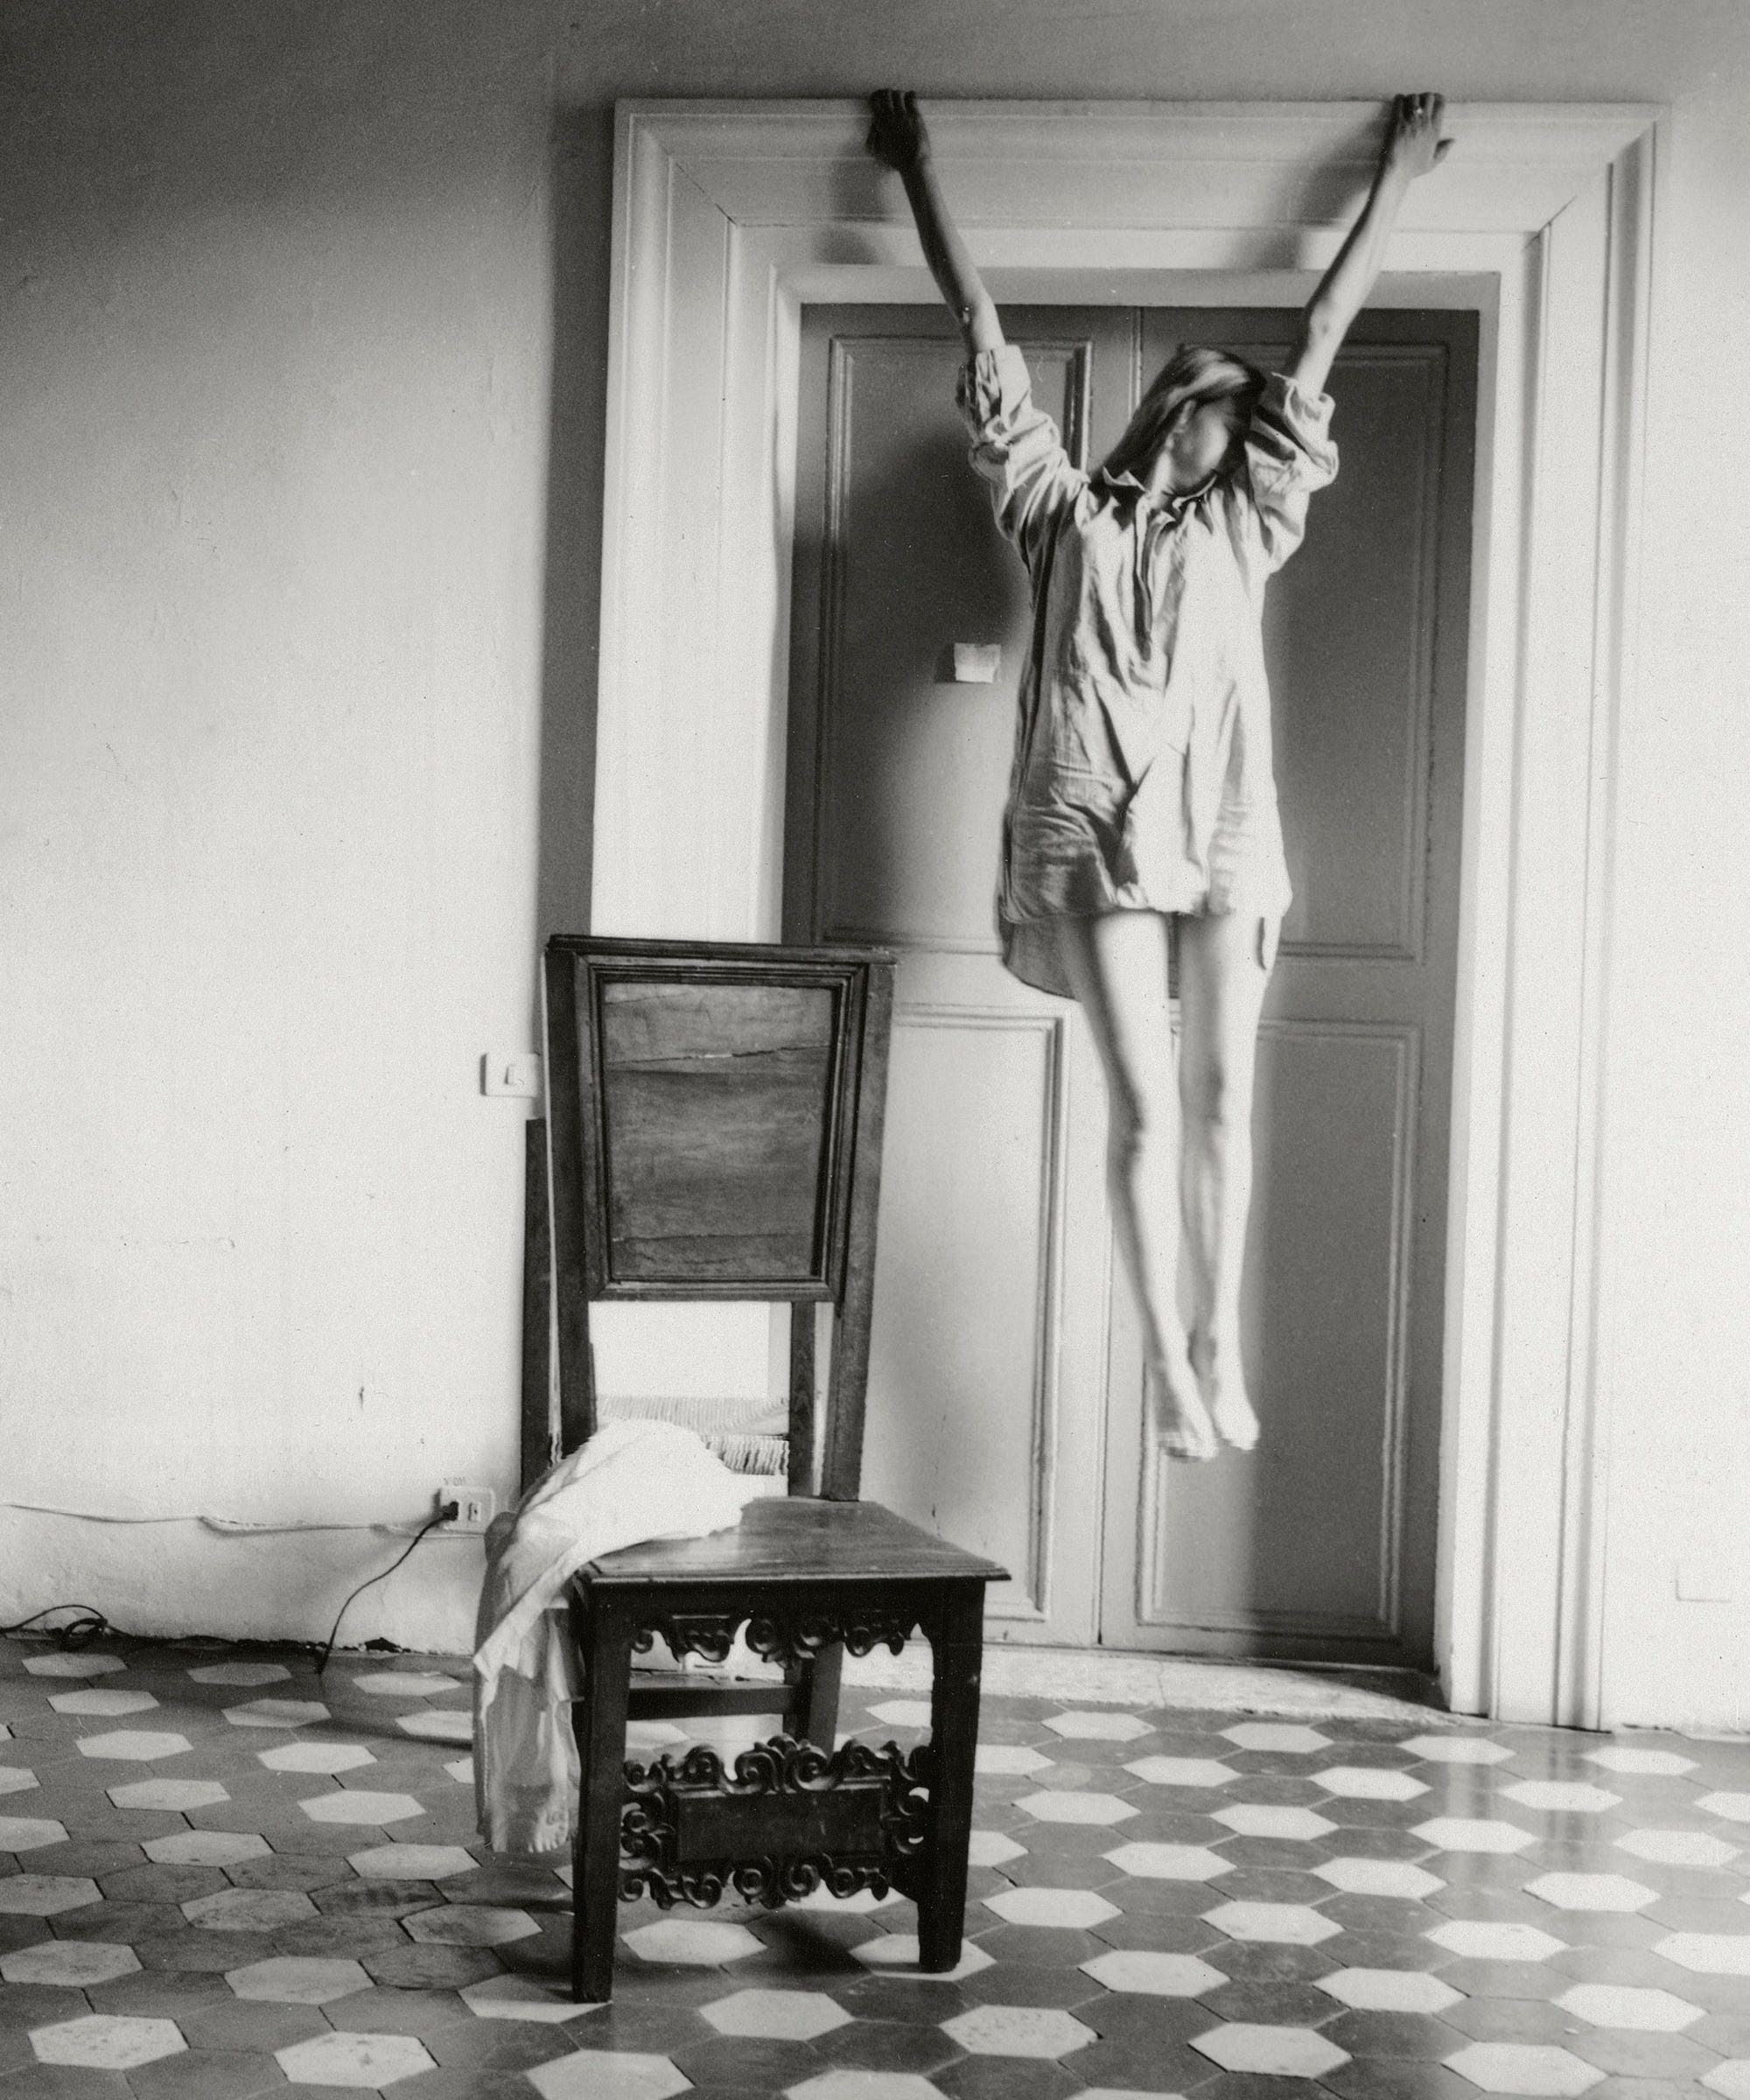 Francesca-Woodman-Untitled-Rome-Italy-1977-79-C-Betty-and-George-Woodman